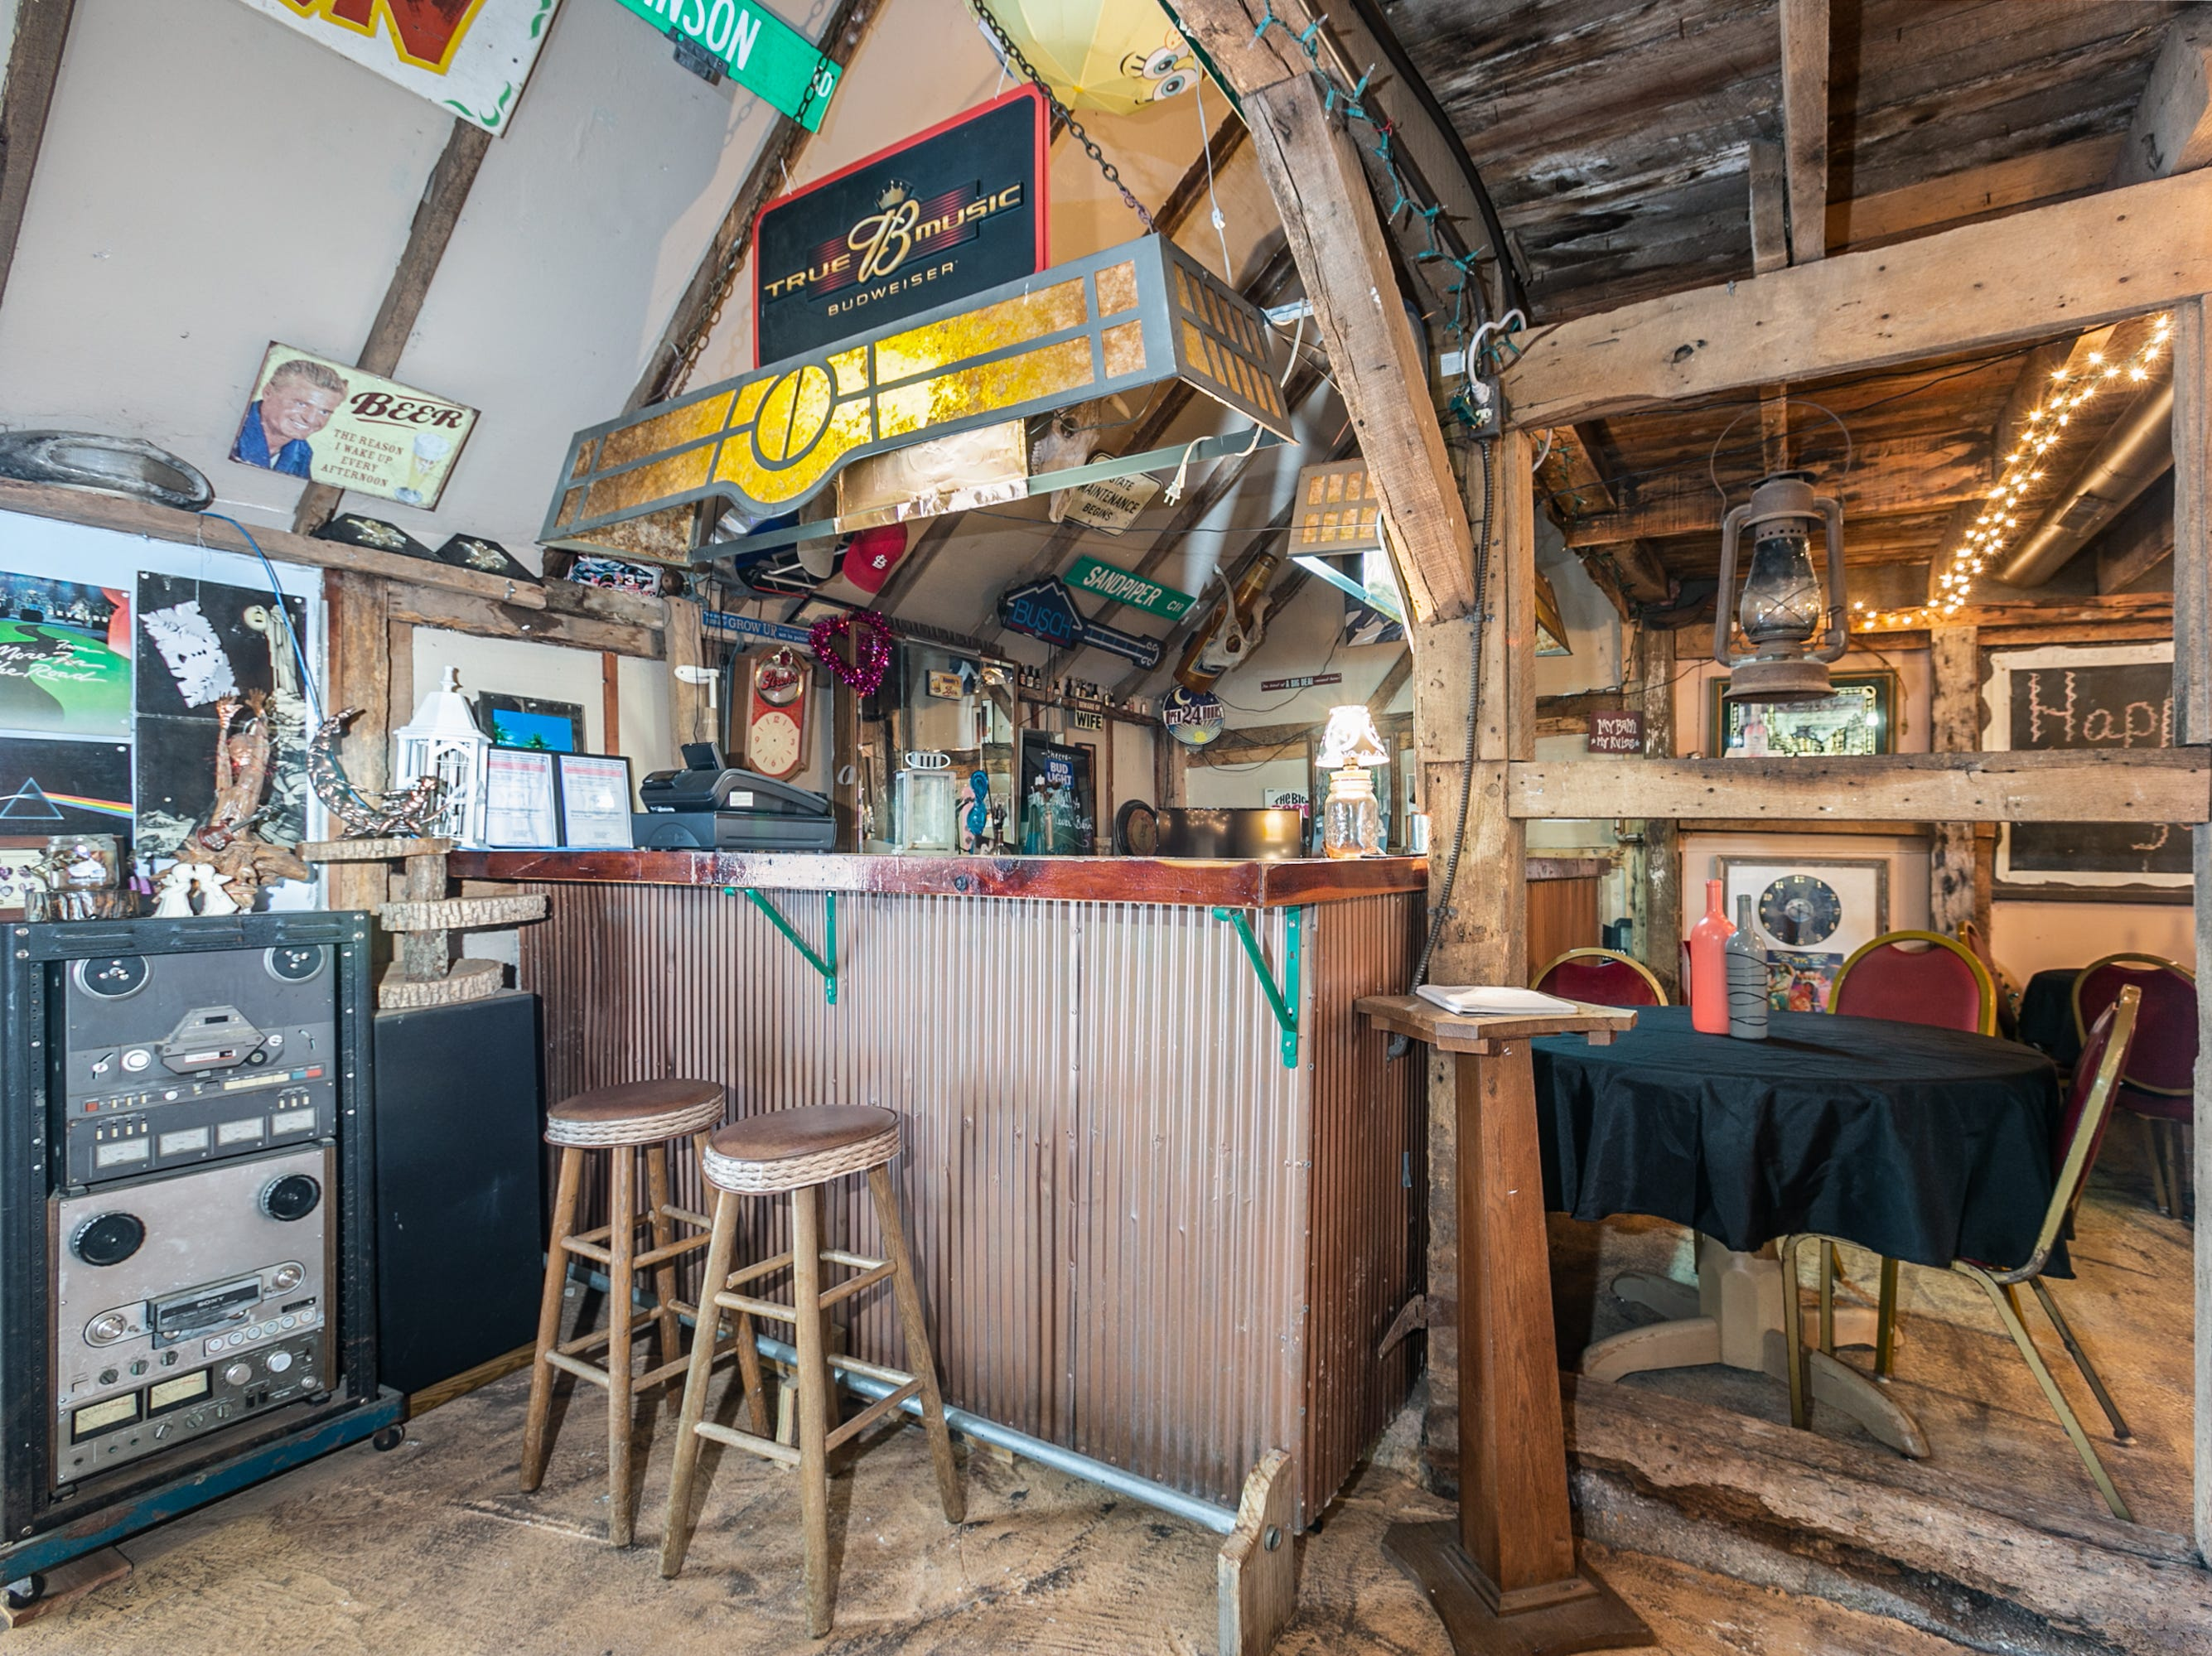 The Waldens plan to move the bar yet again to a 37- by 11-foot space to create more seating and allow for a kitchen pass-through.